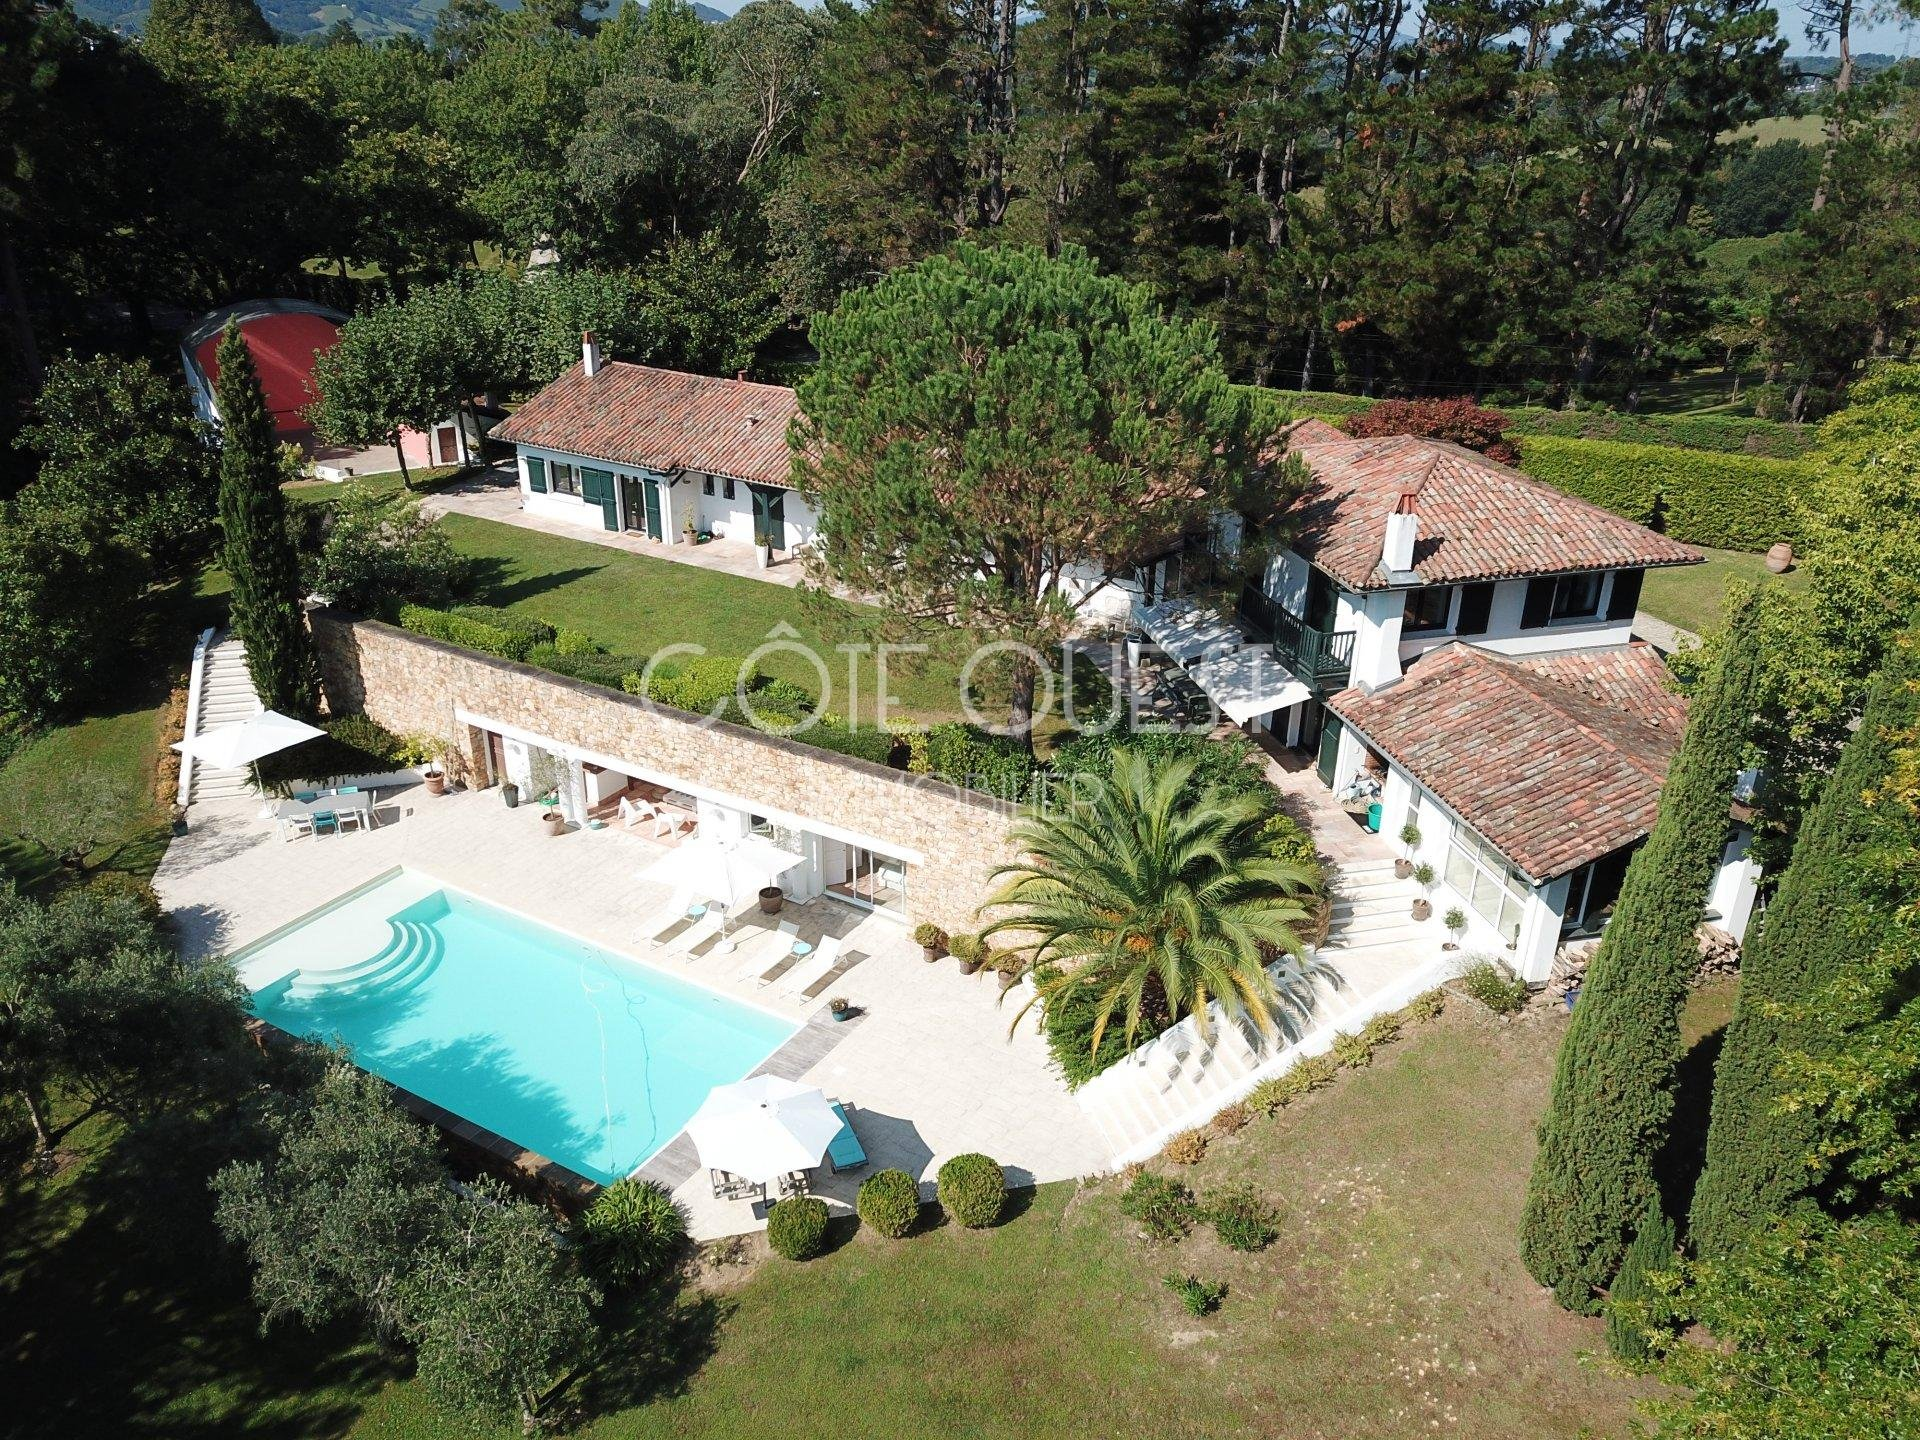 A PROPERTY WITH A SWIMMING POOL LOCATED A FEW MINUTES FROM SAINT-JEAN-DE-LUZ